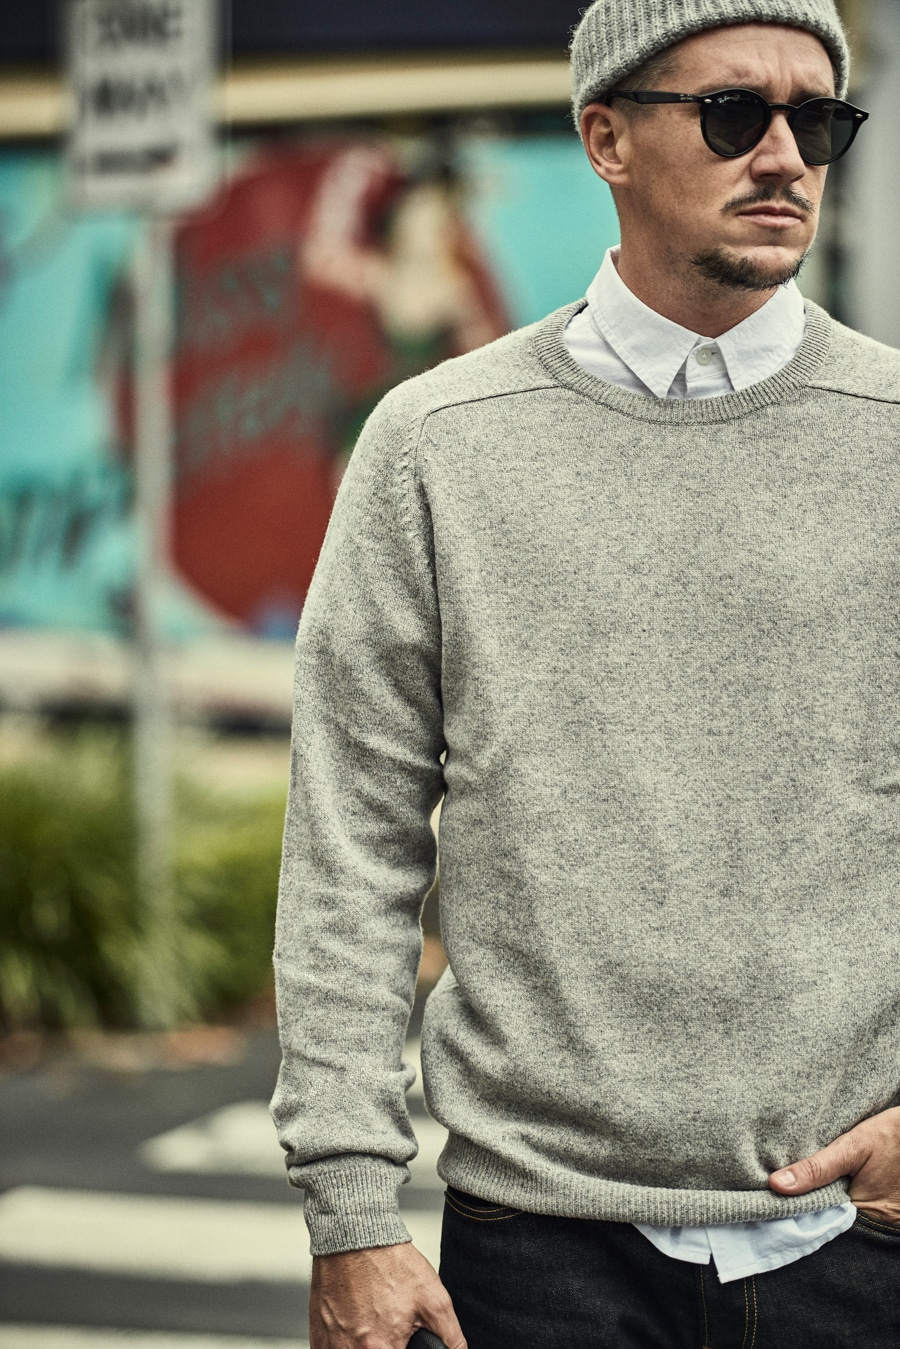 marks & spencer wearing sweater